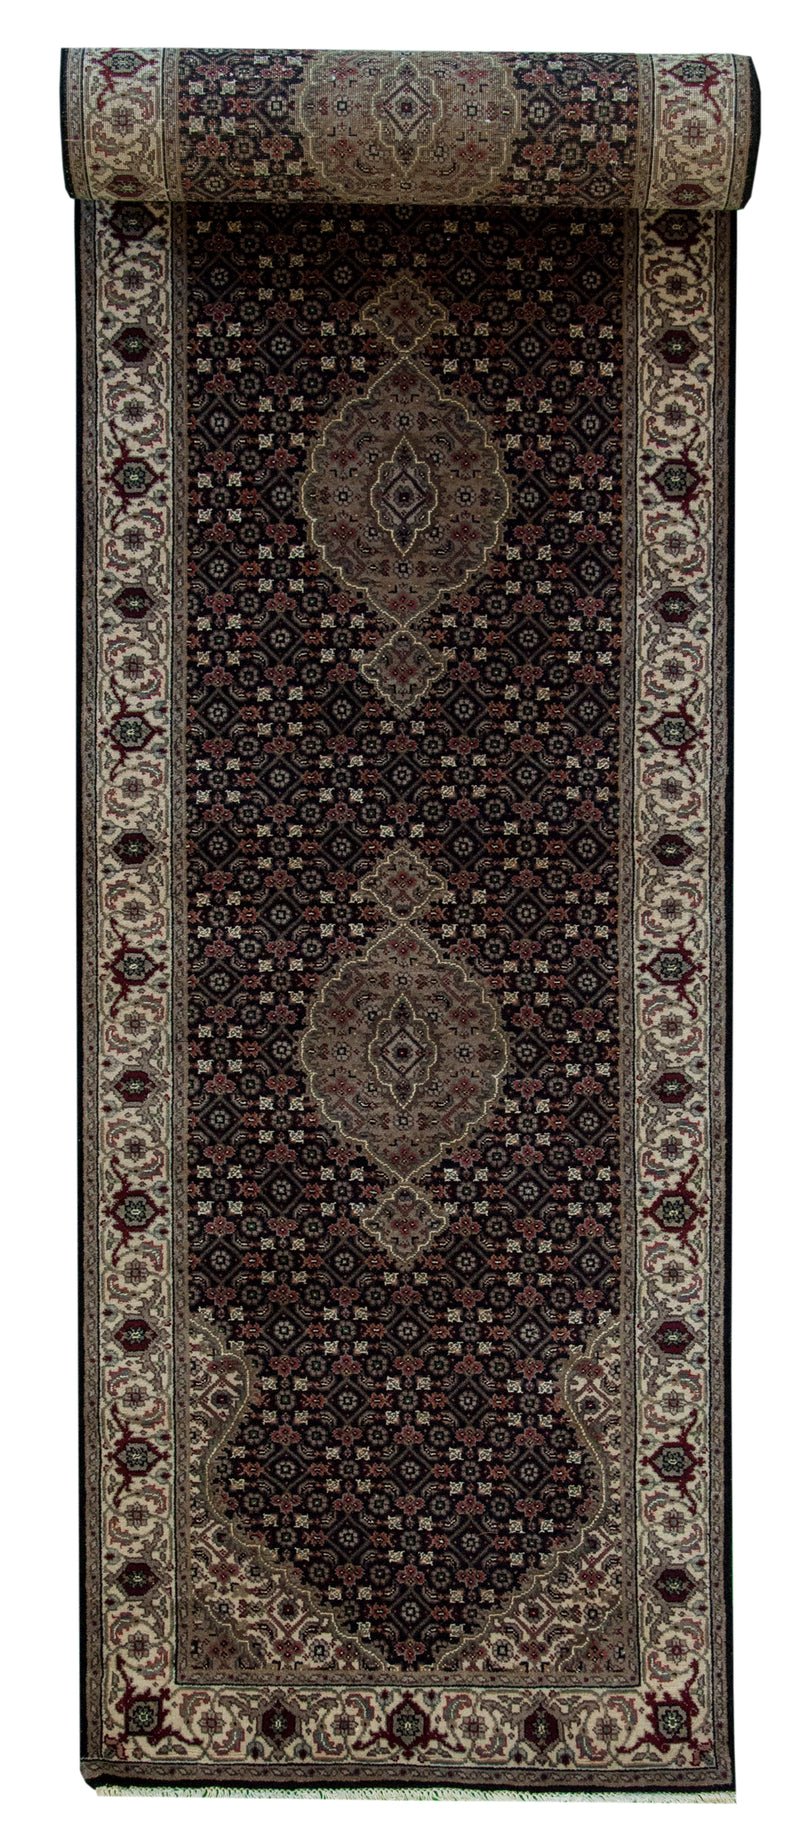 Indo Tabriz Runner Cream 2'7x10'1